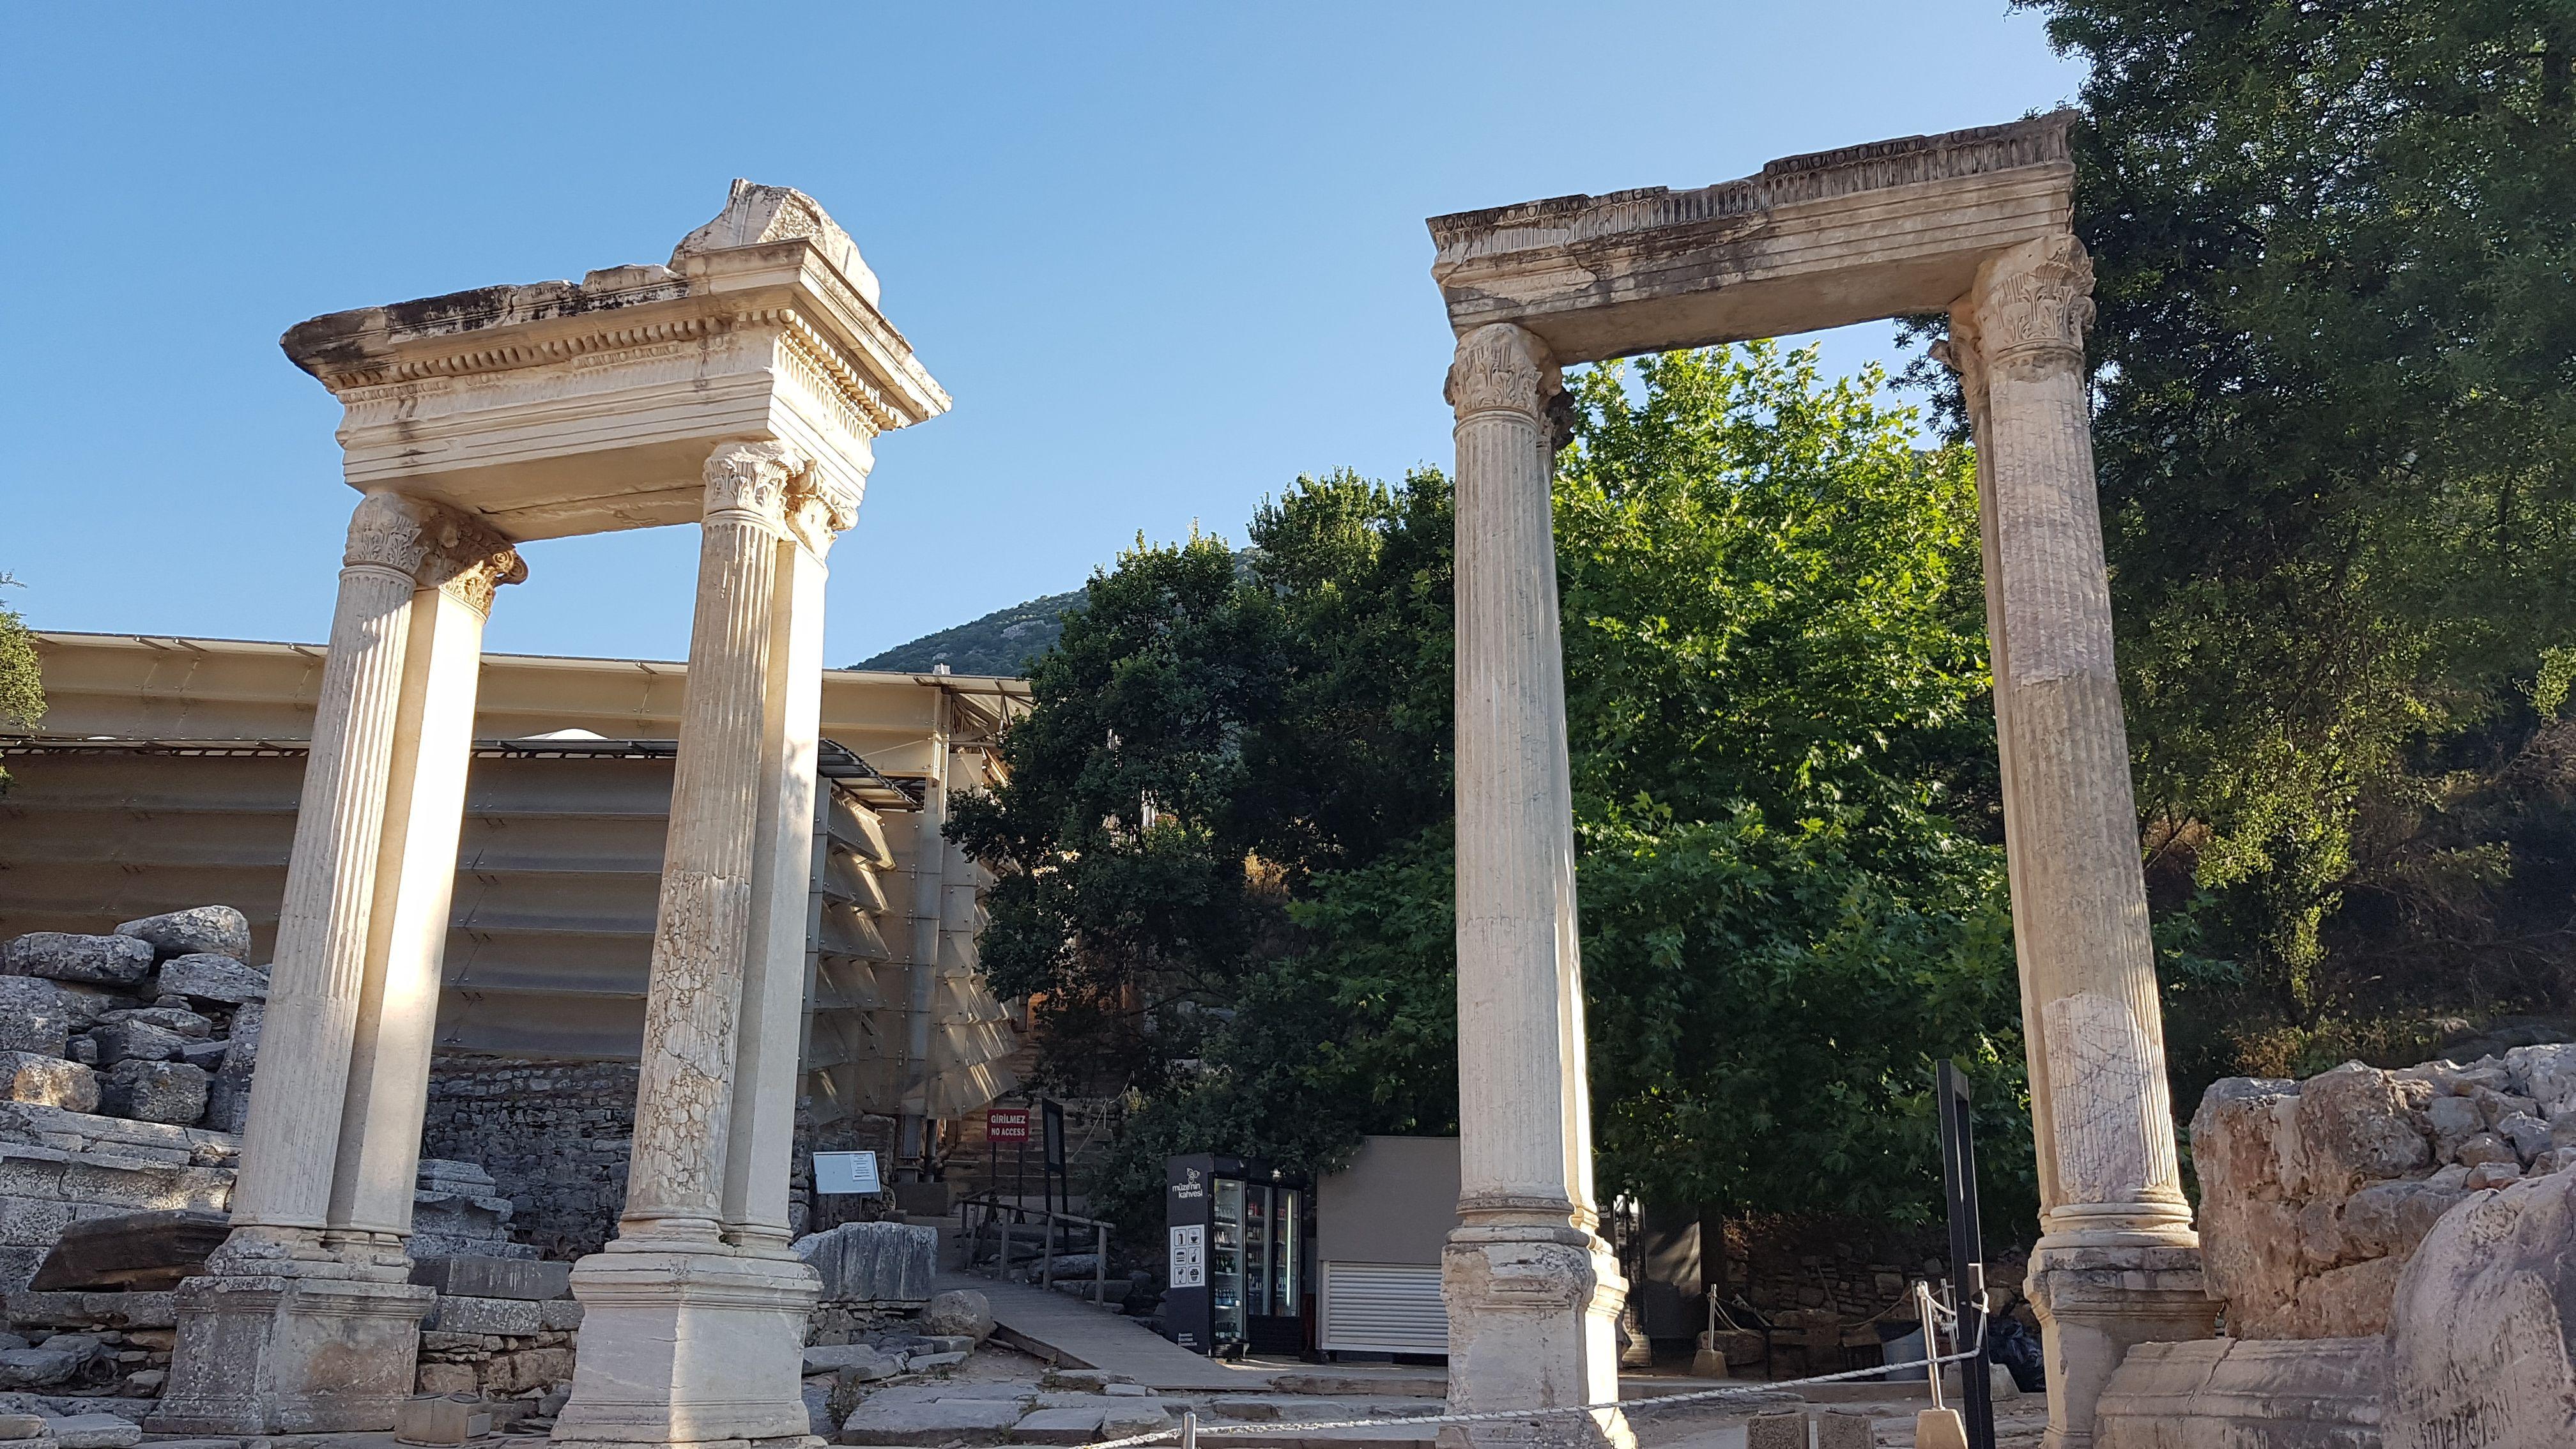 So-called Hadrian's Gate on the Triodos Square in Ephesus